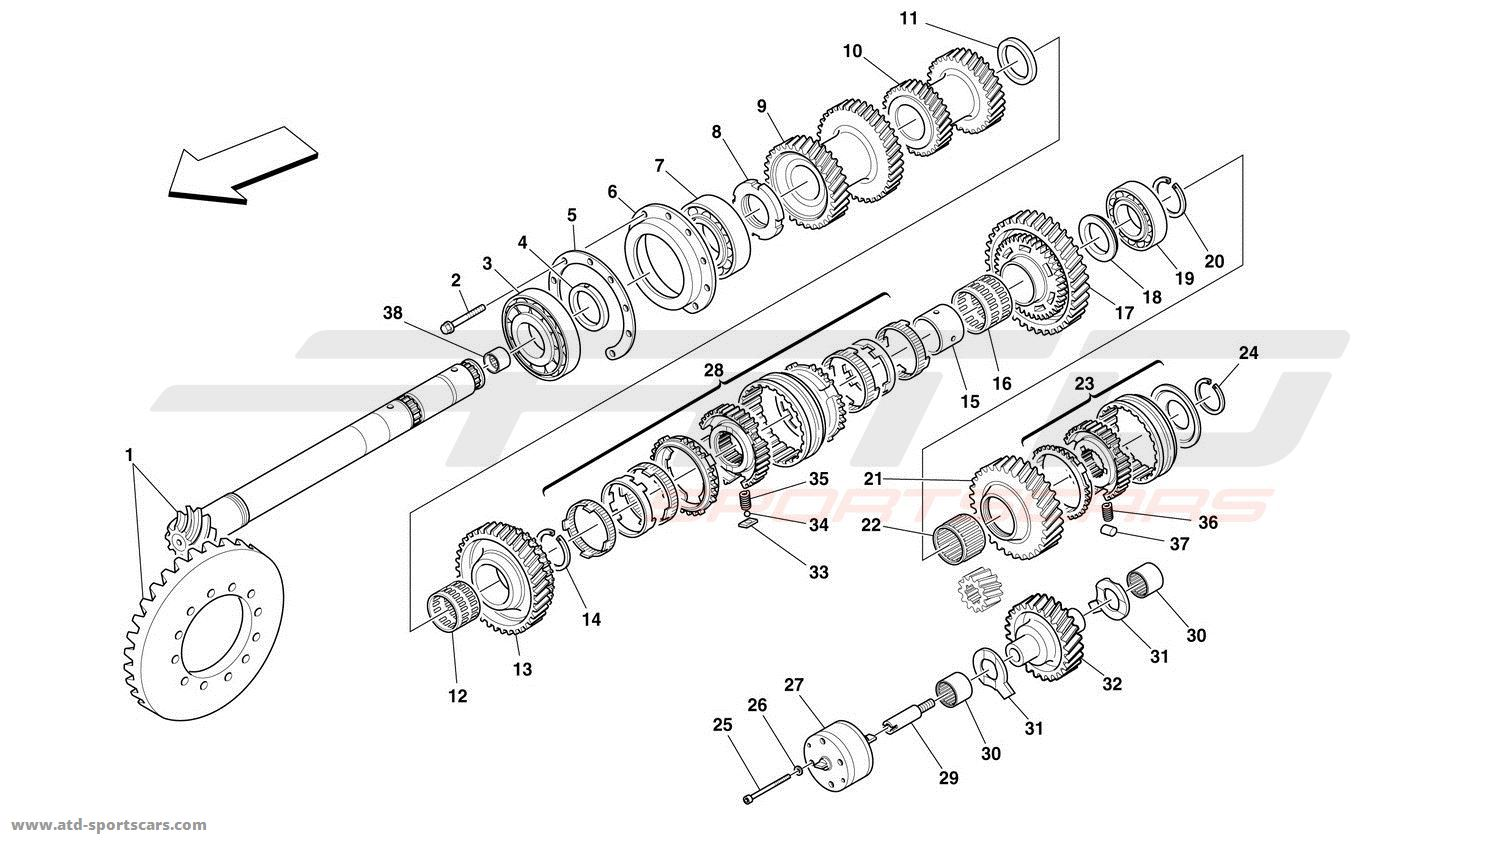 Ferrari 360 Challenge LAY SHAFT GEARS parts at ATD